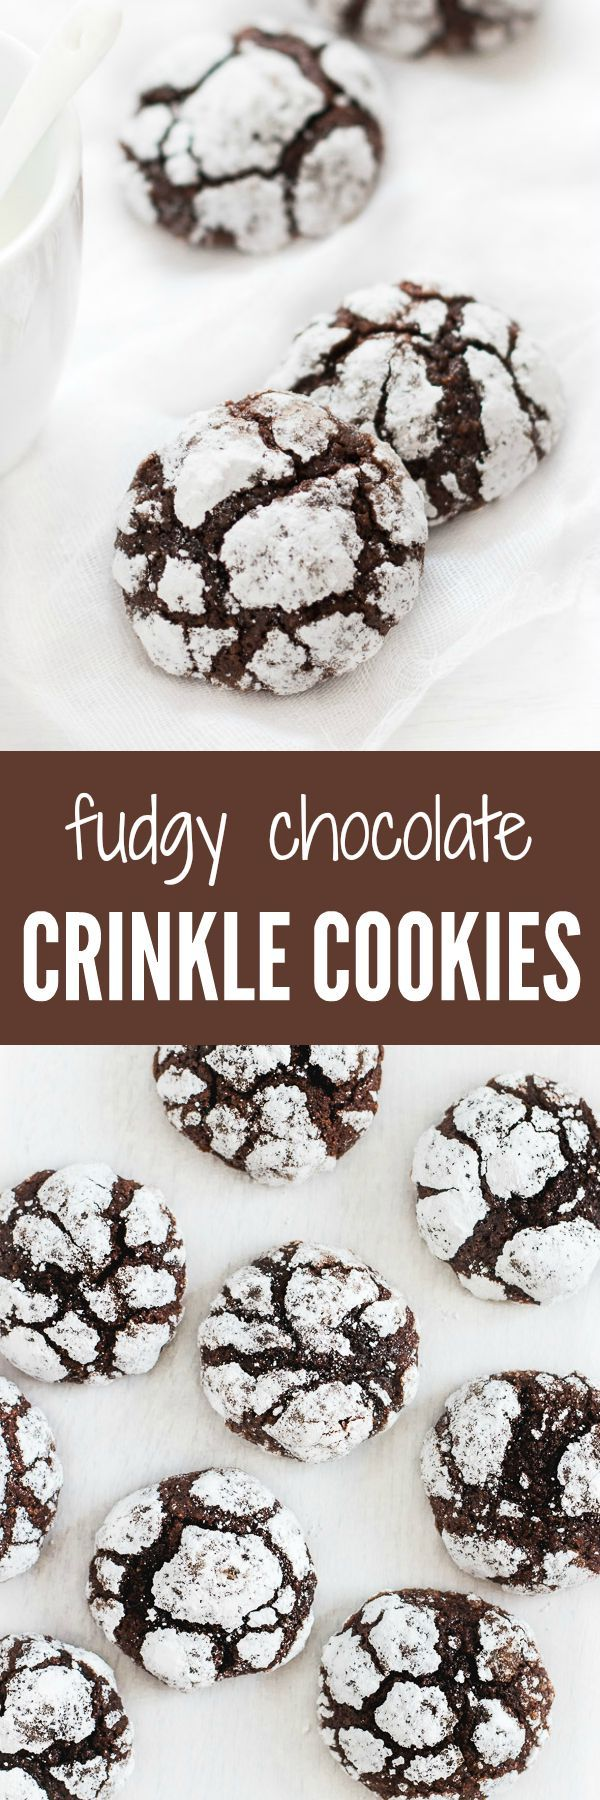 Crunchy on the outside and super fudgy on the inside, these crinkle cookies are a chocolate lover's dream.